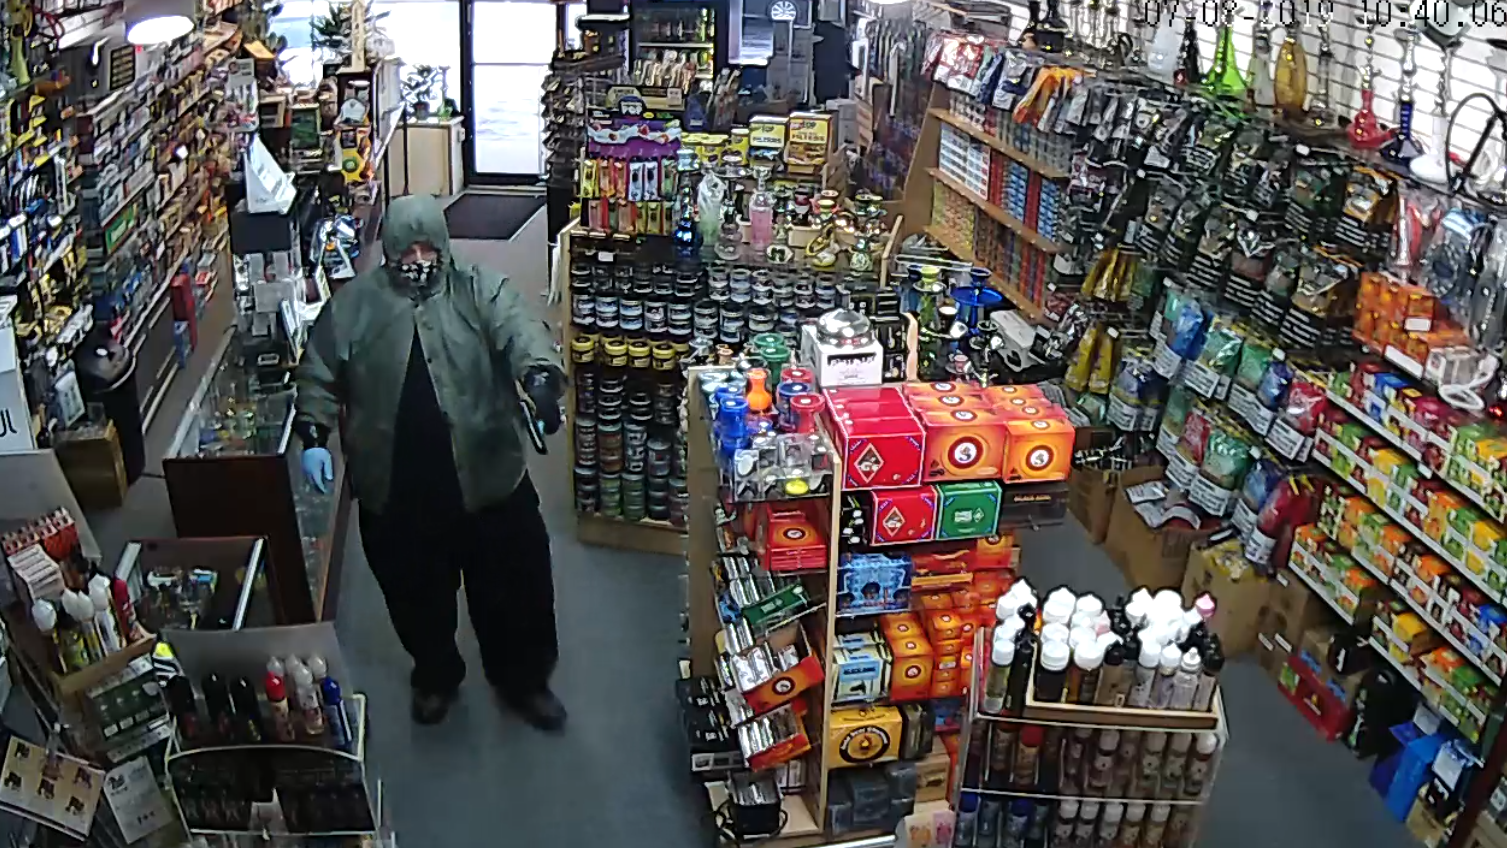 Suspect Robs A Philadelphia Store, But Suddenly Returns All The Money Saying It Isn't Enough To Cover His Child's Transplant Anyway